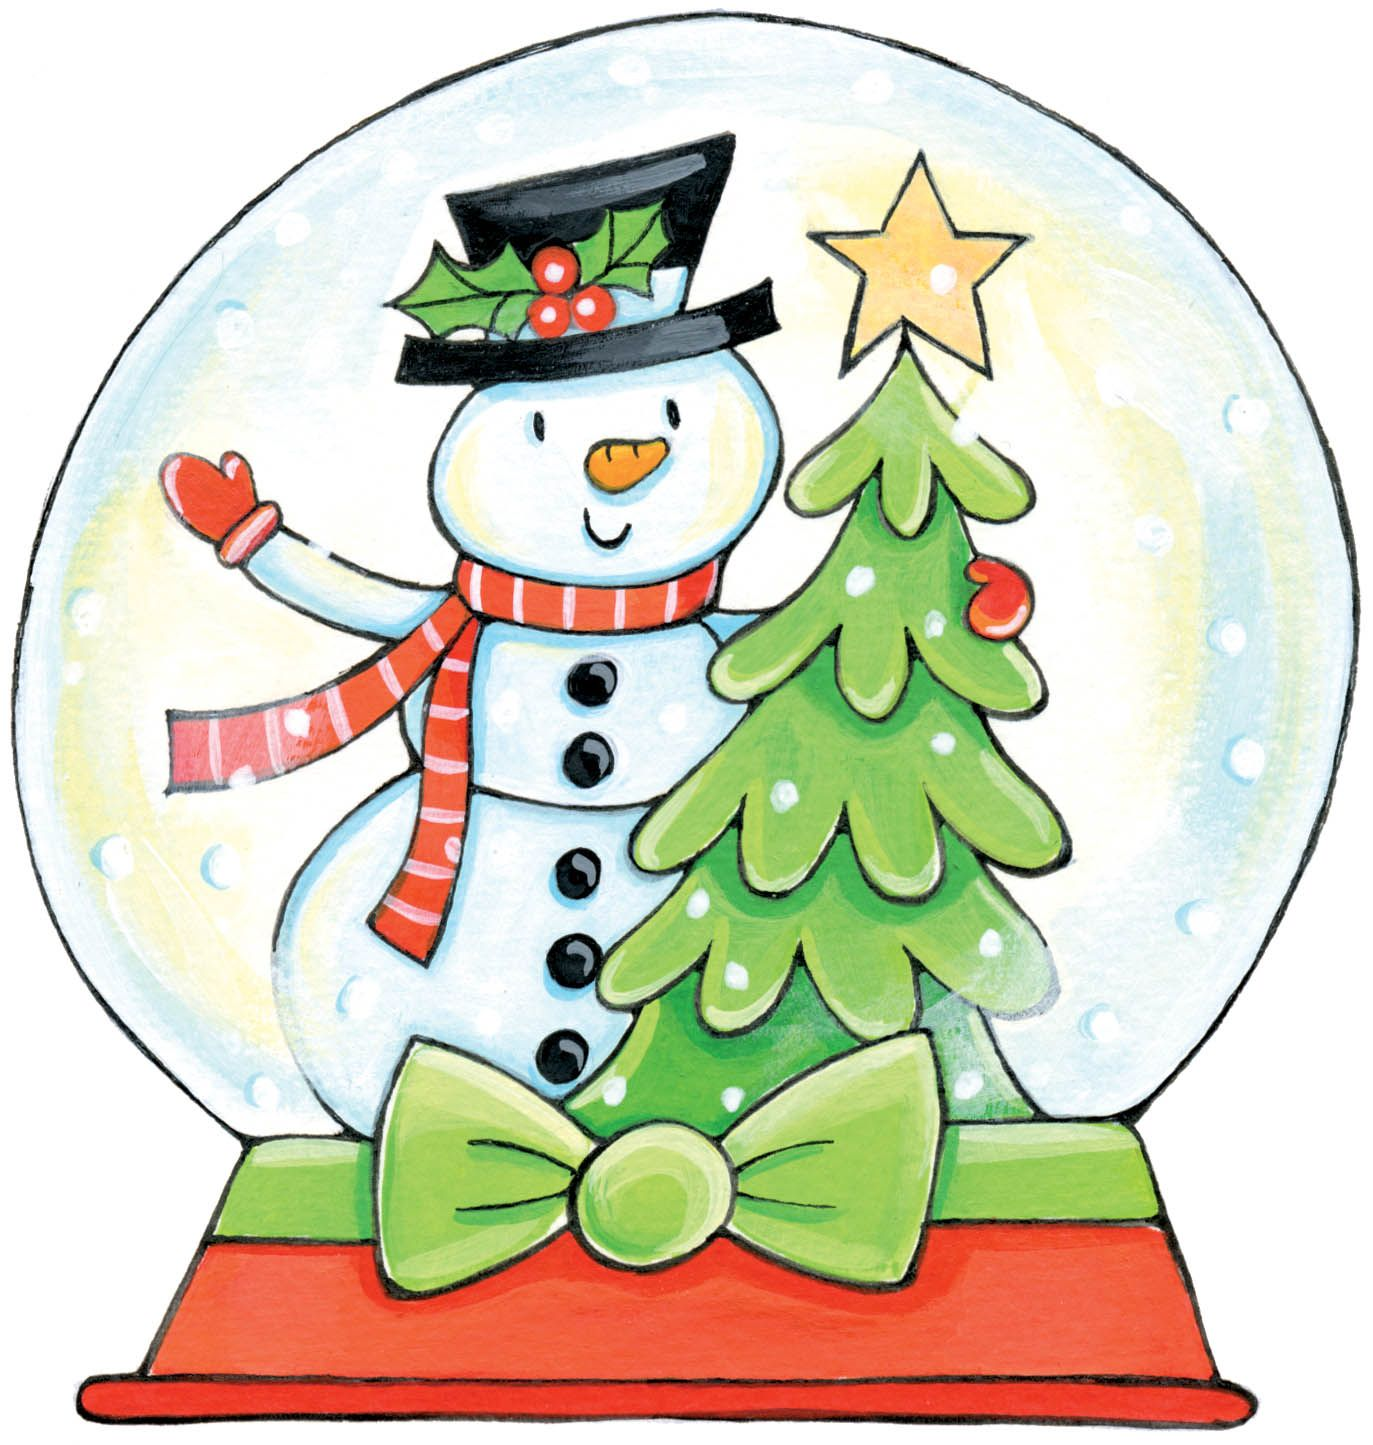 snow globe animated clip art christmas snow globes clip art snow rh pinterest com christmas snow globe clipart free snow globe clipart free